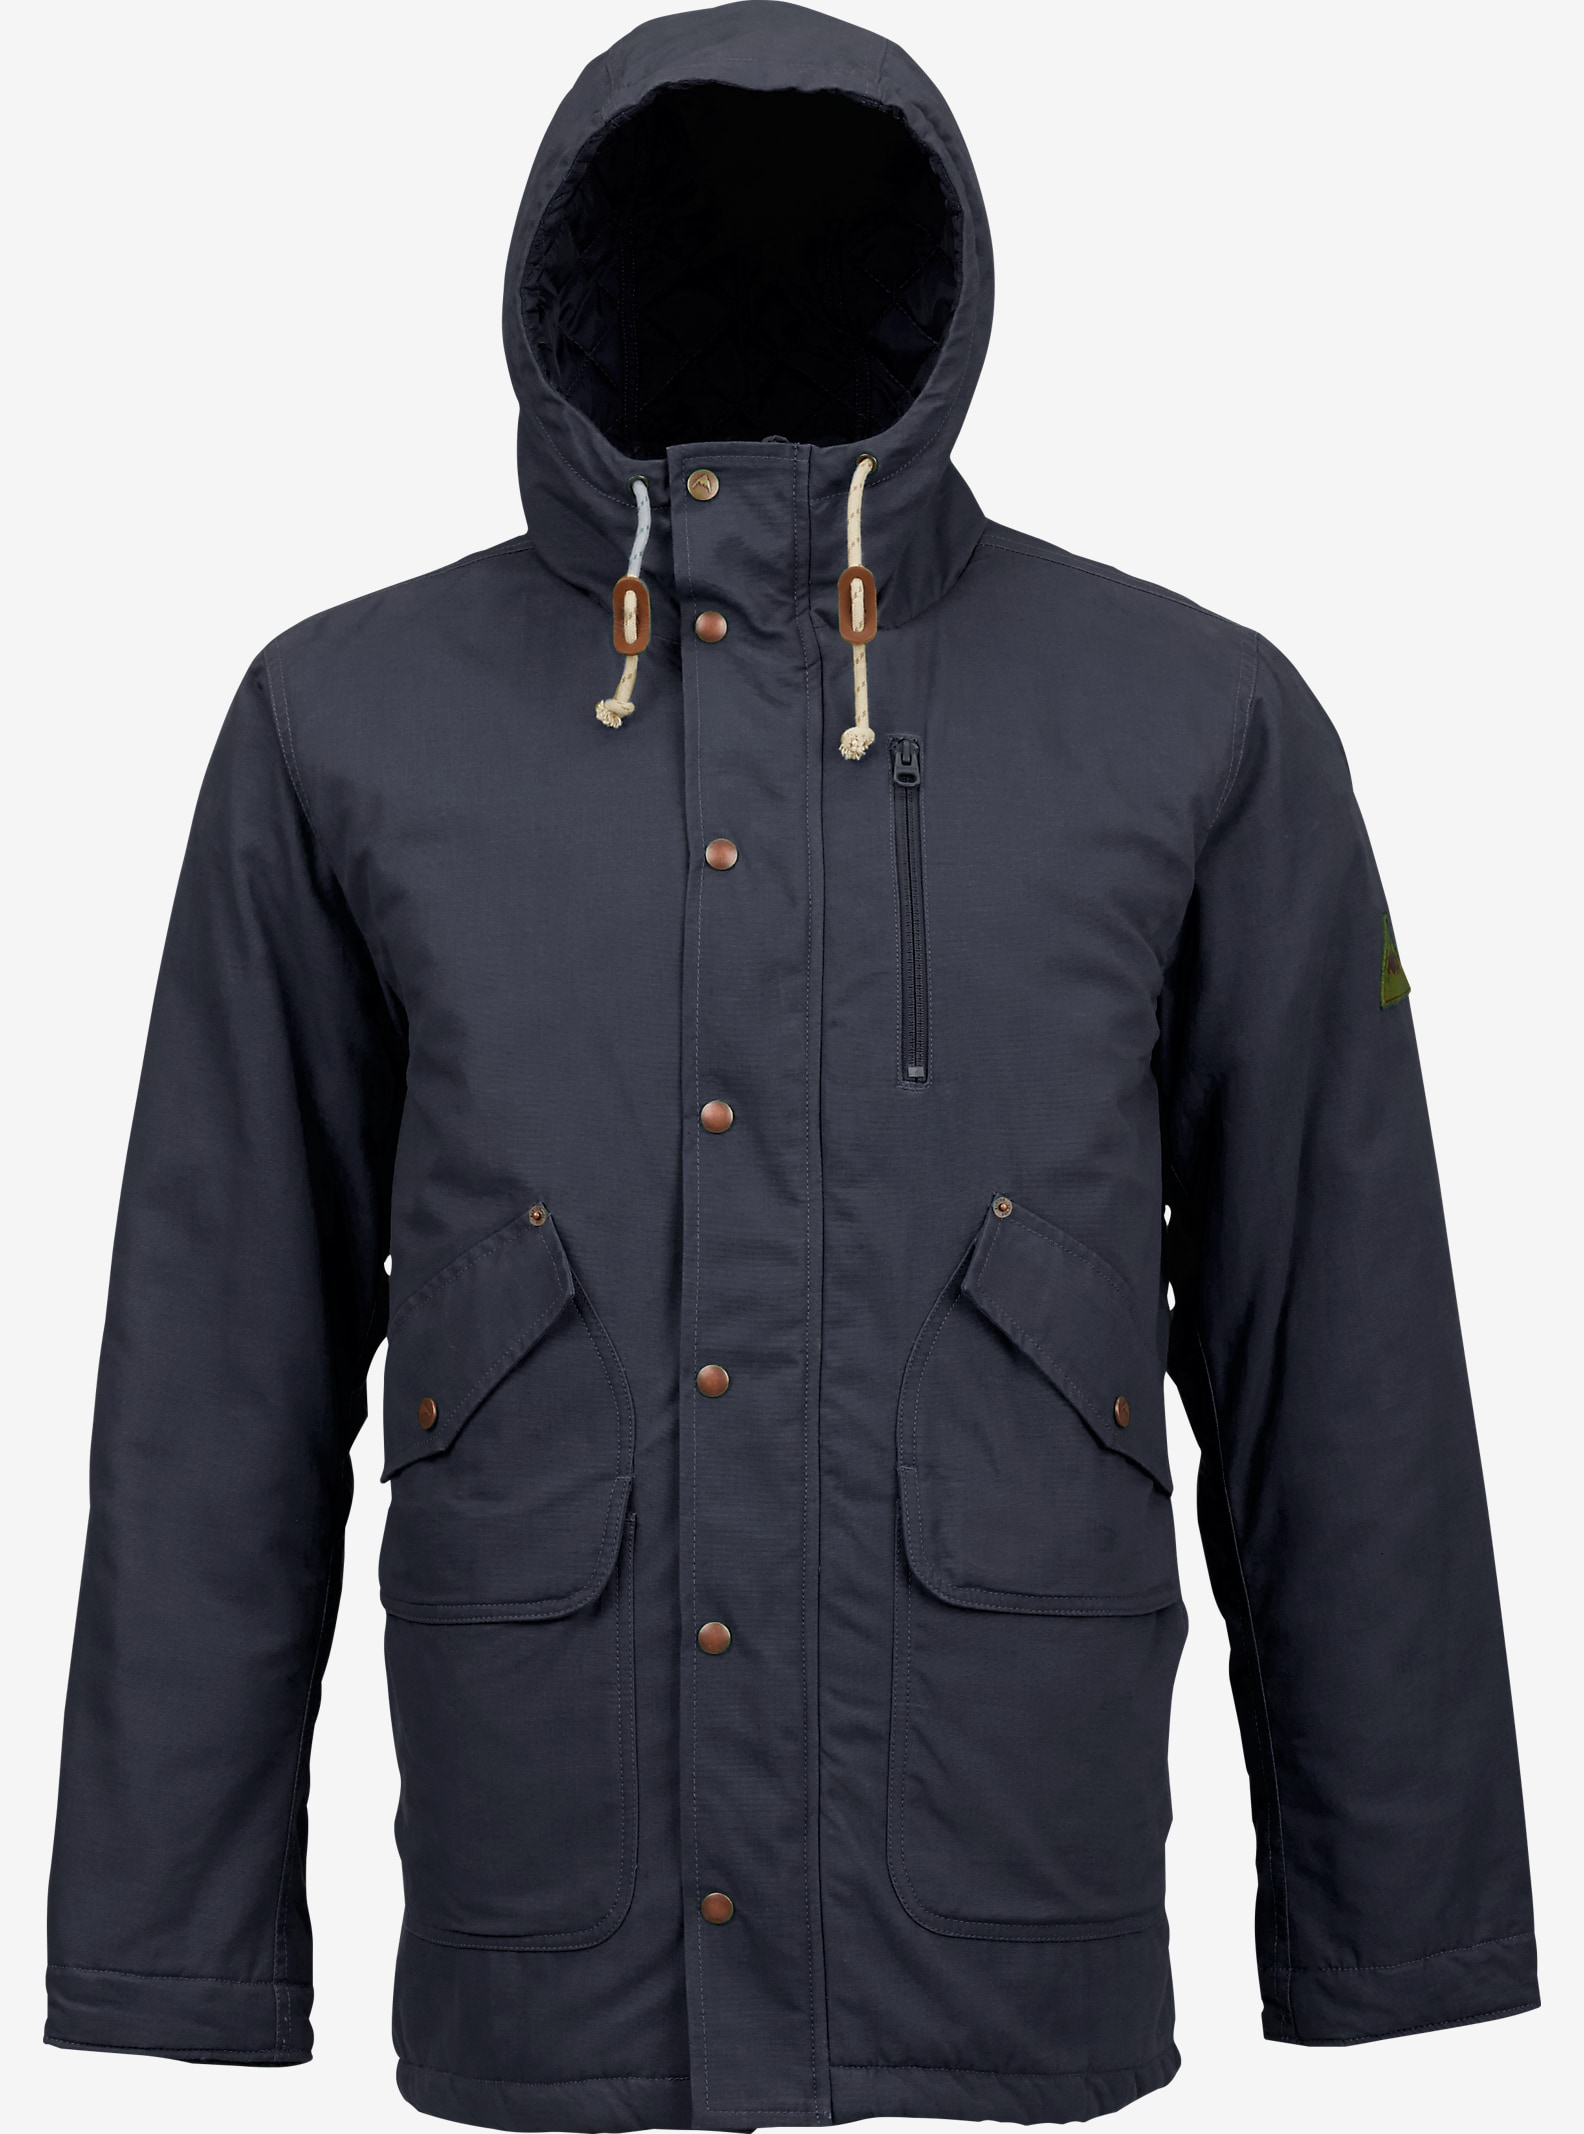 Burton Sherman Jacket shown in Eclipse